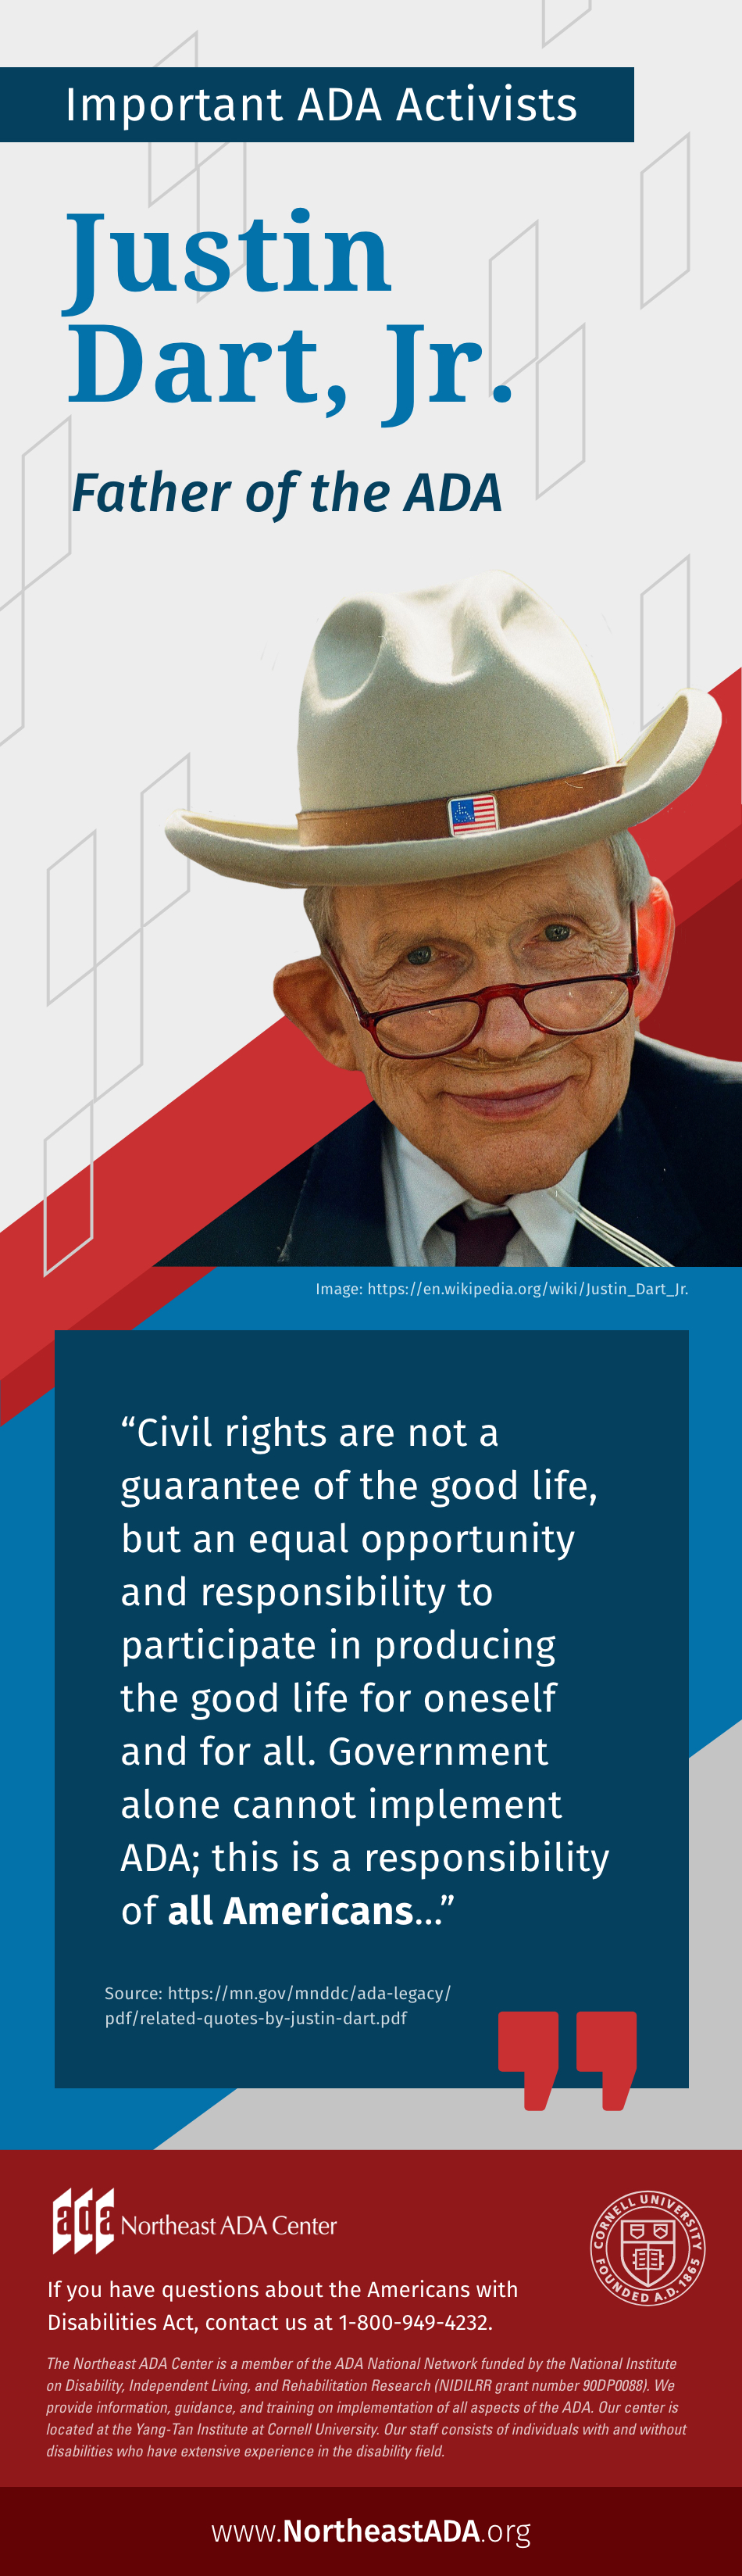 Infographic titled 'Important ADA Activists: Justin Dart, Jr.'